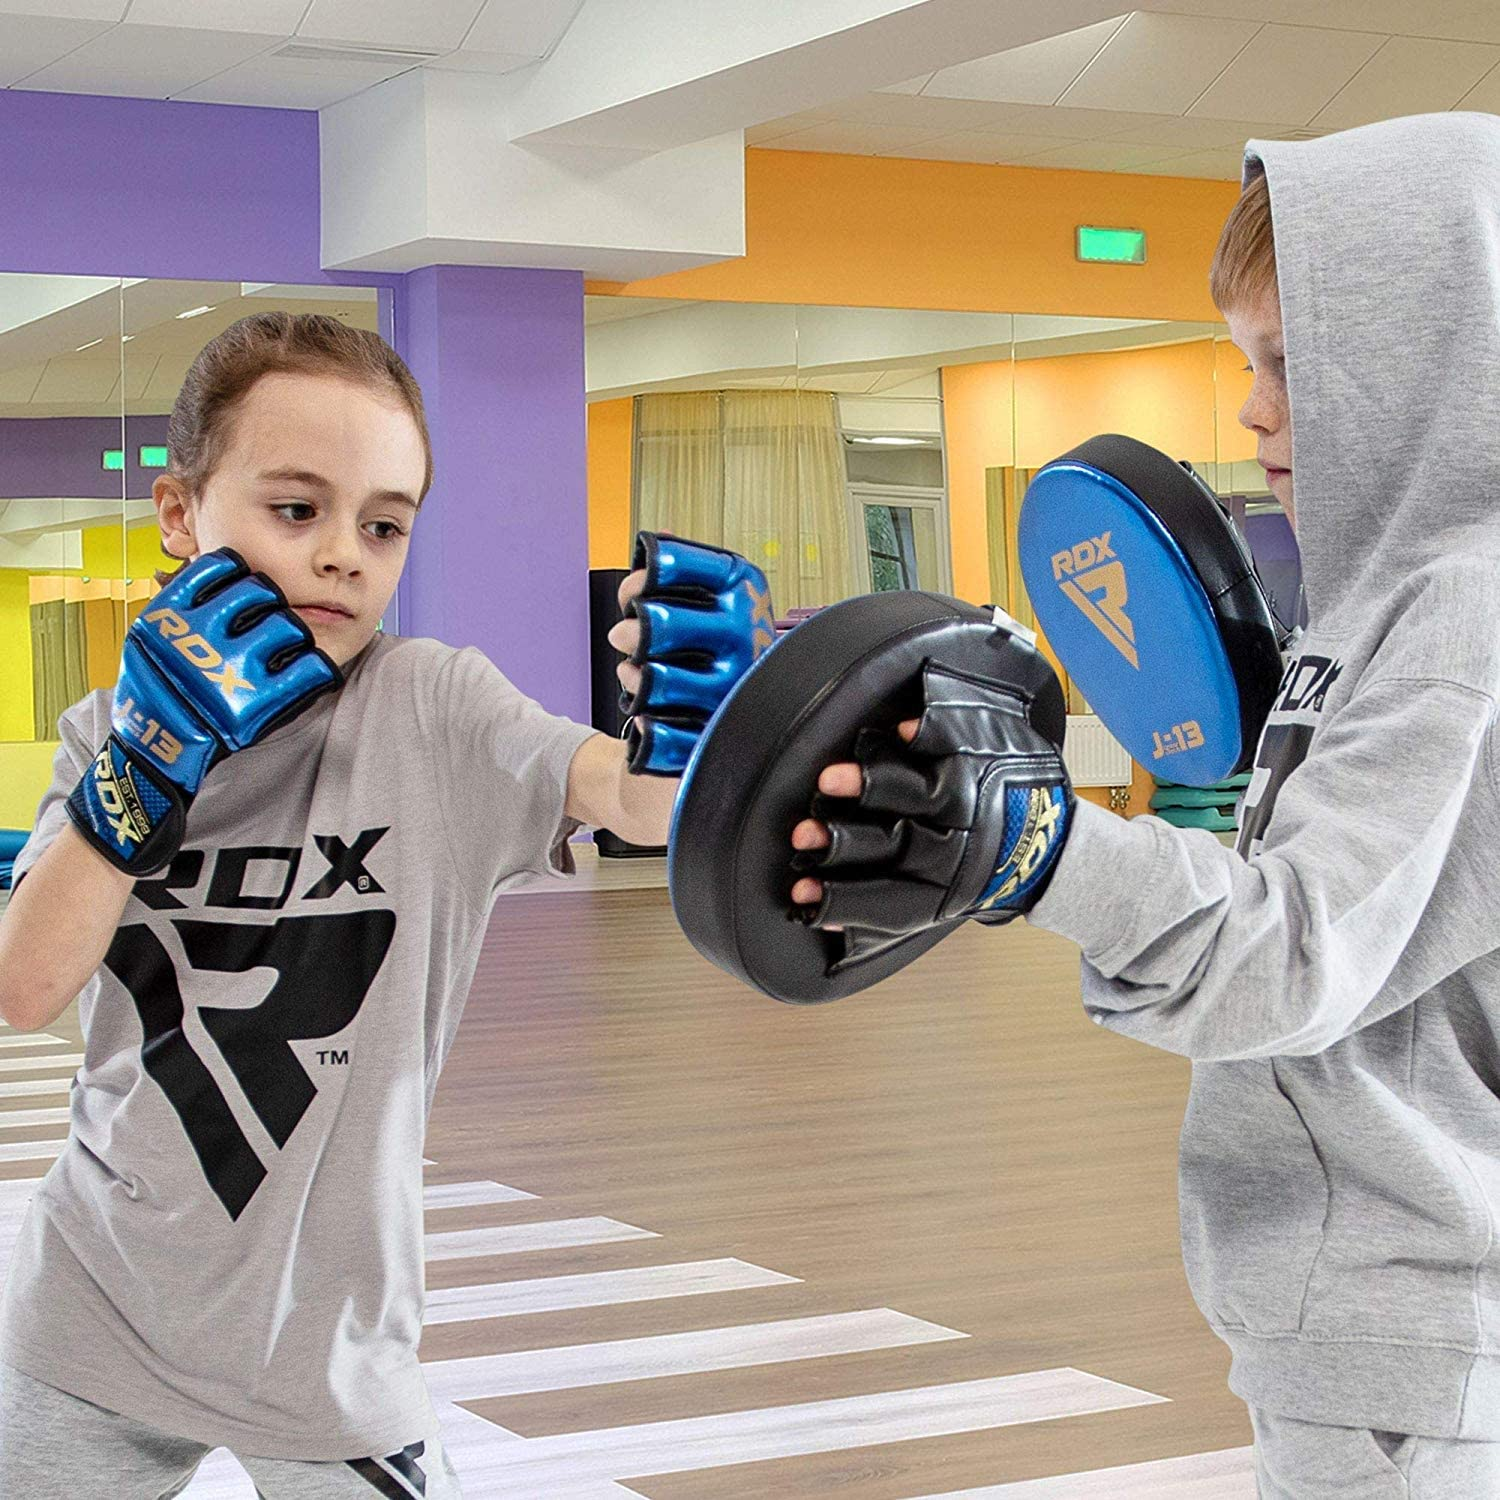 RDX Kids MMA Gloves for Martial Arts Grappling Training Kickboxing Youth Metallic Skin Combat Leather Mitts  Good for Sparring Junior Cage Fighting /& Punching Bag Muay Thai